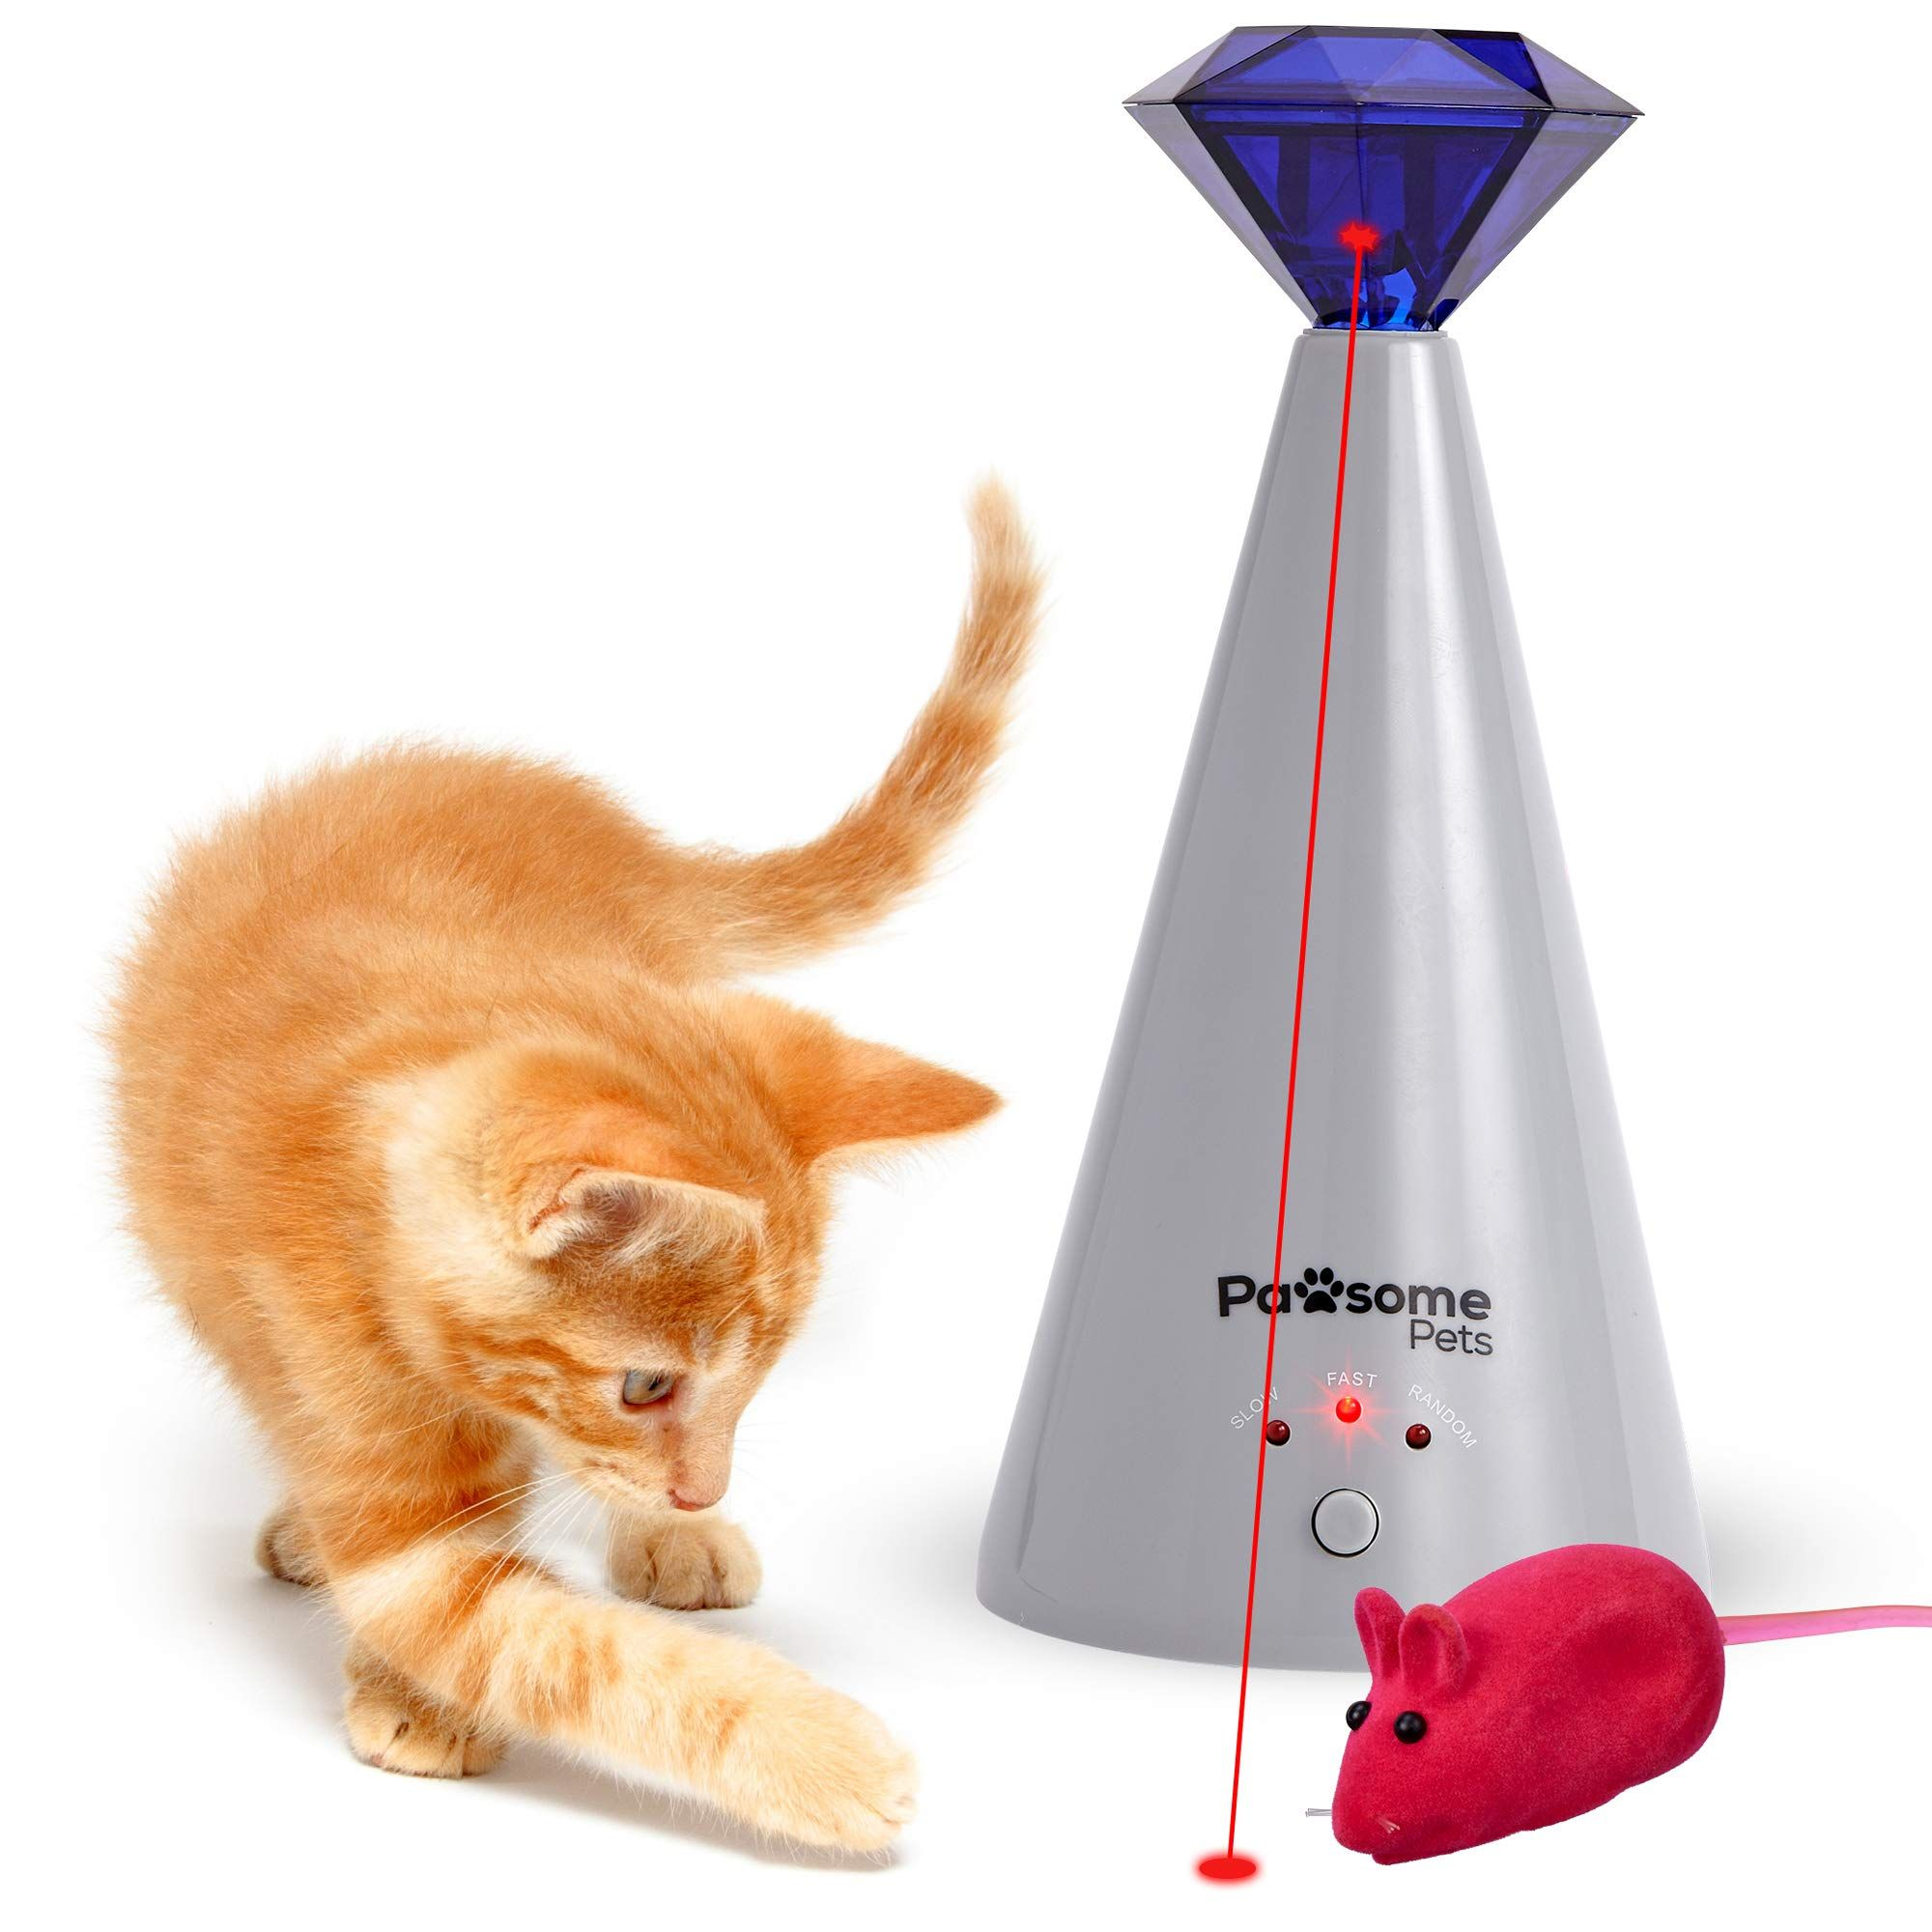 Pawsome Pets Interactive Laser Cat Toy Automatic Rotating Laser Pointer For Kittens Dogs 3 Speed Modes Great For Pet In 2020 Cat Laser Toy Cat Toys Cat Toy Mouse